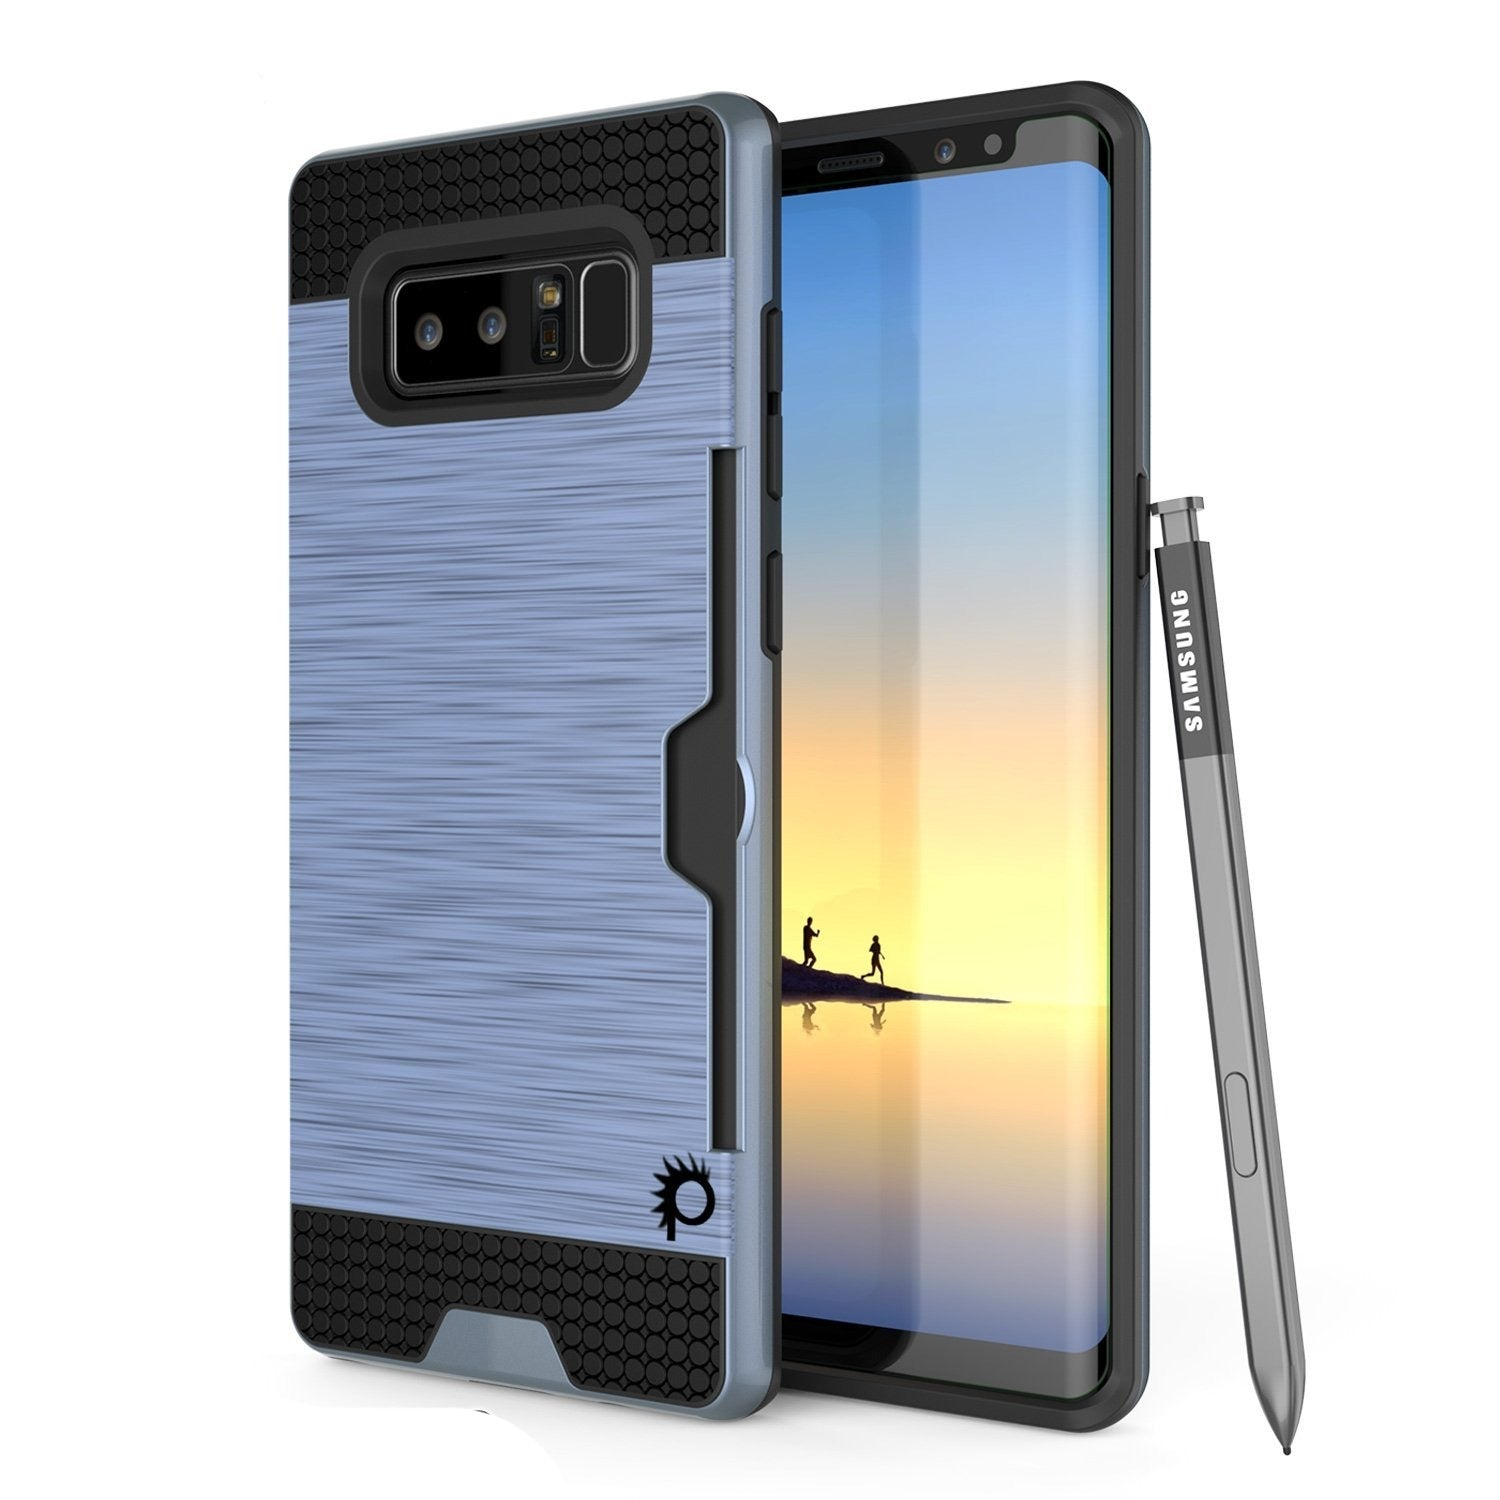 Galaxy Note 8 Dual-Layer Ultra Screen Protector Case W/ Card Slot [Navy]